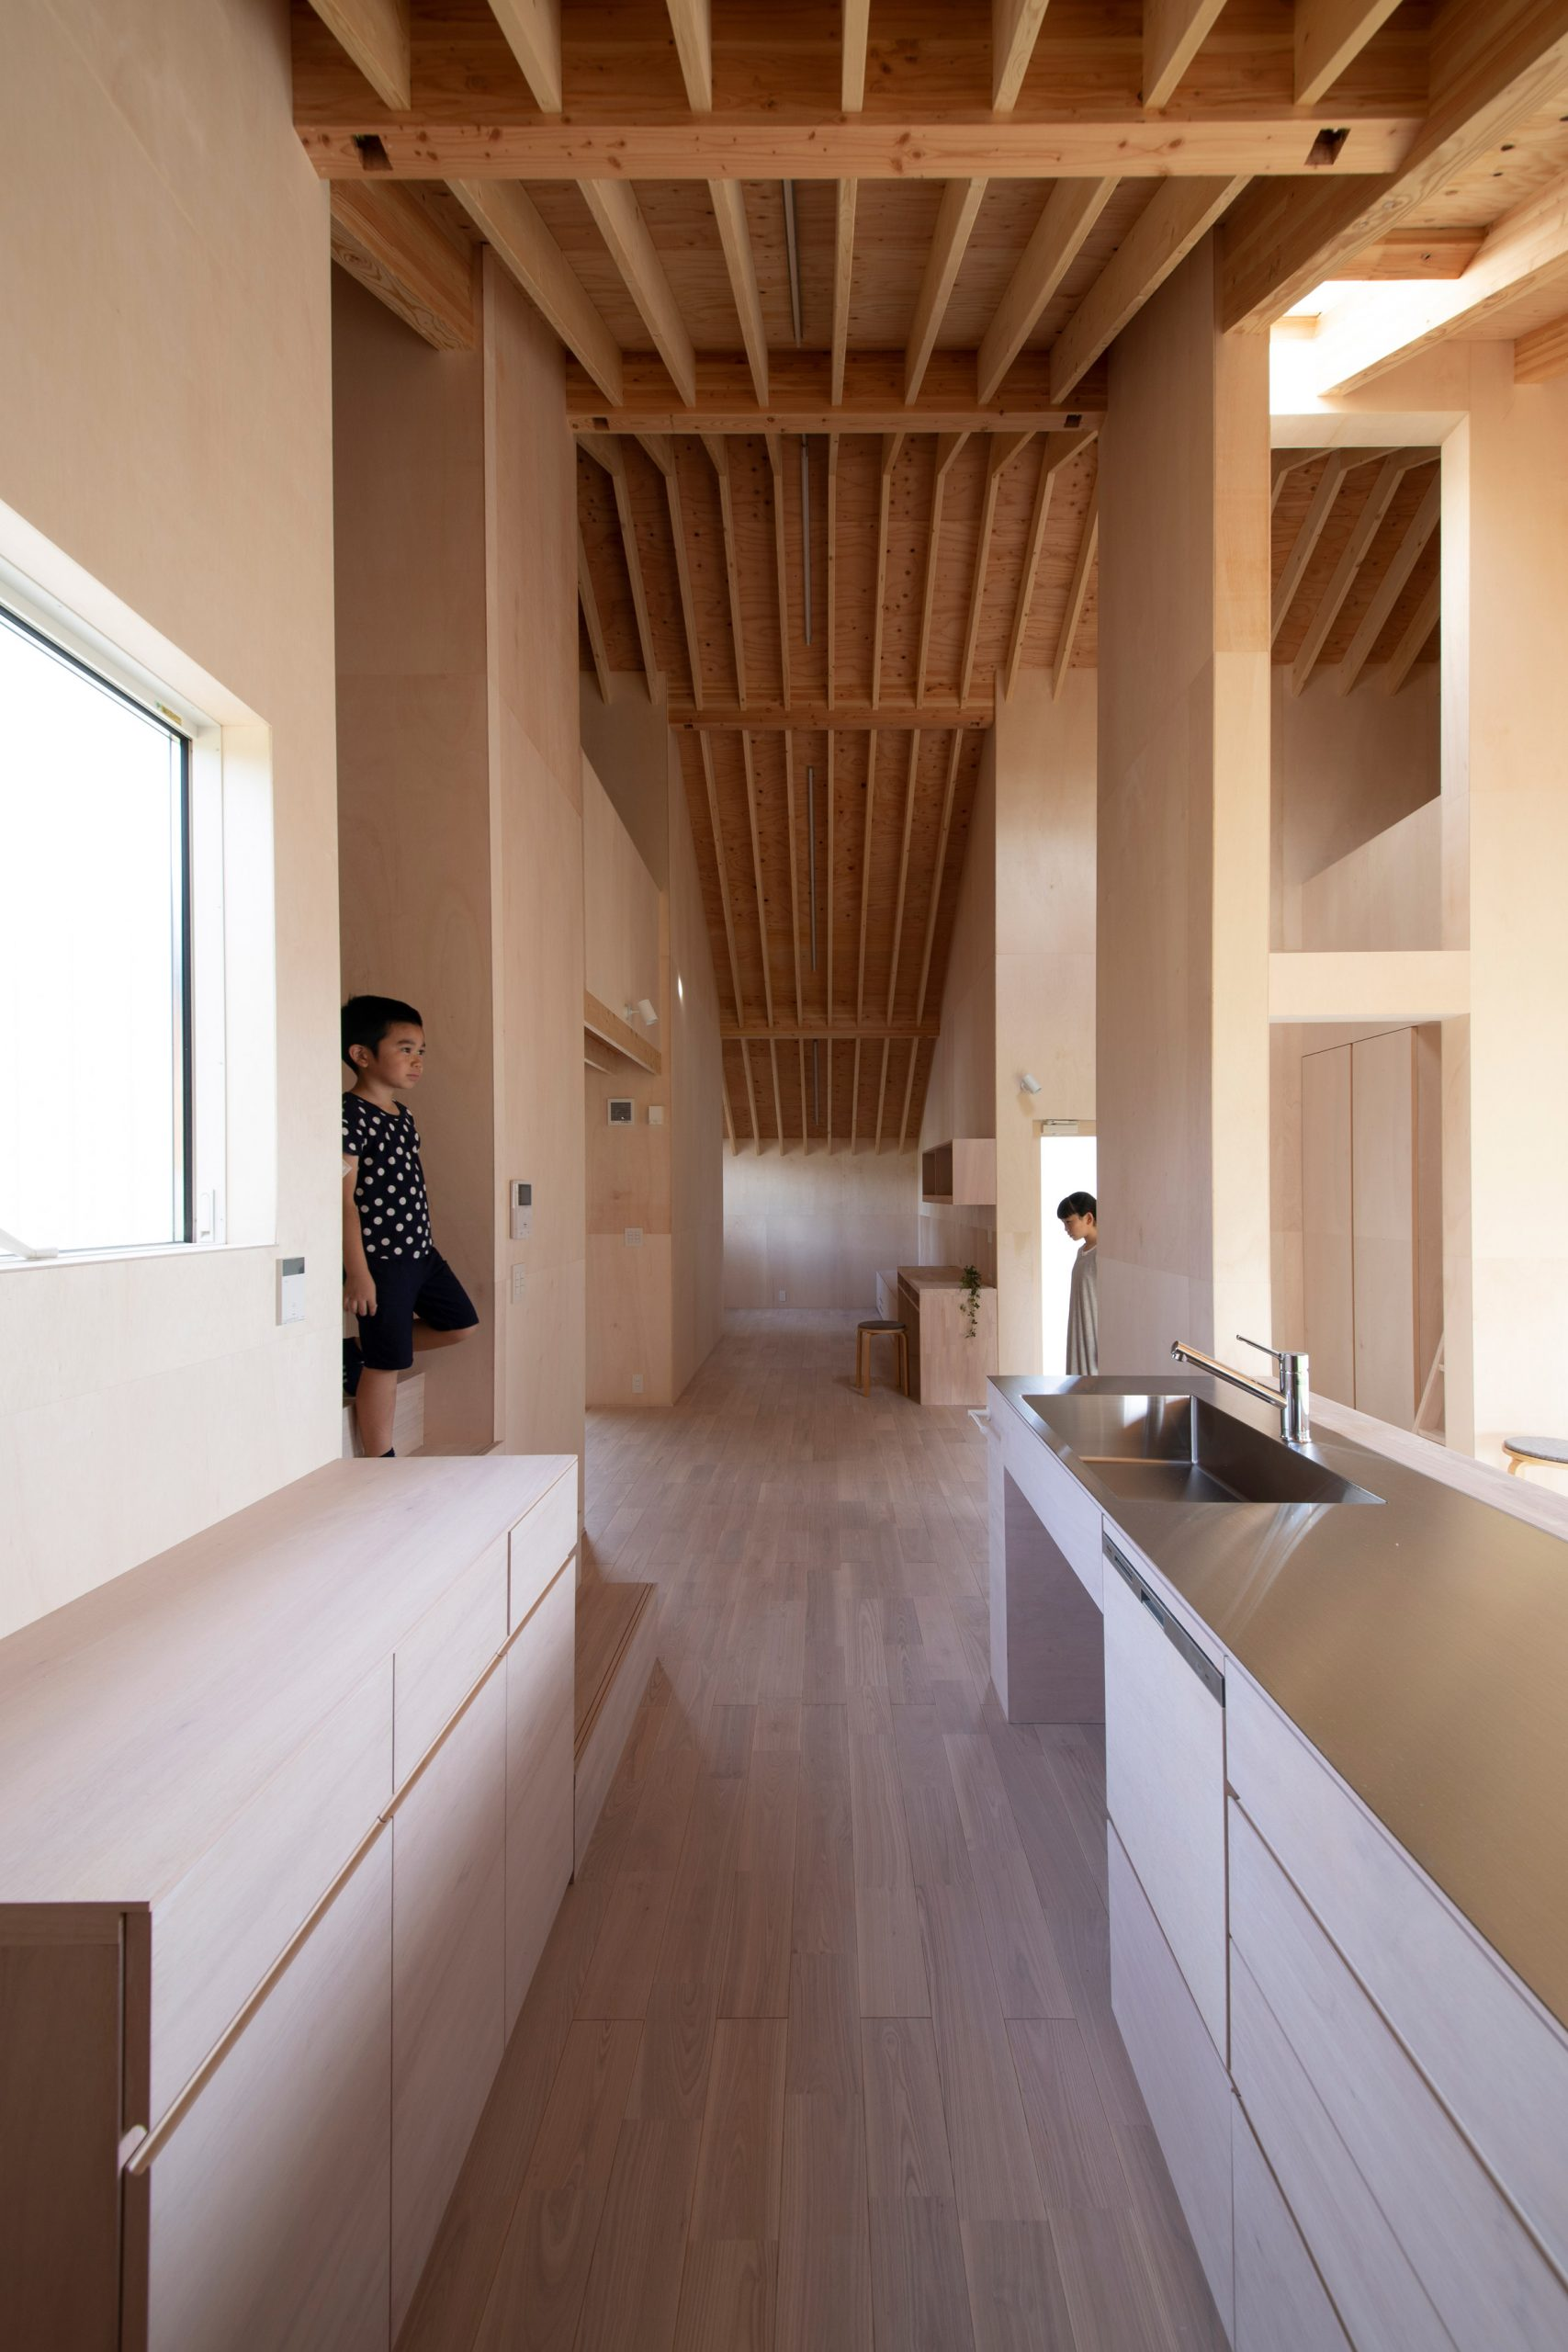 Living space in Japanese house